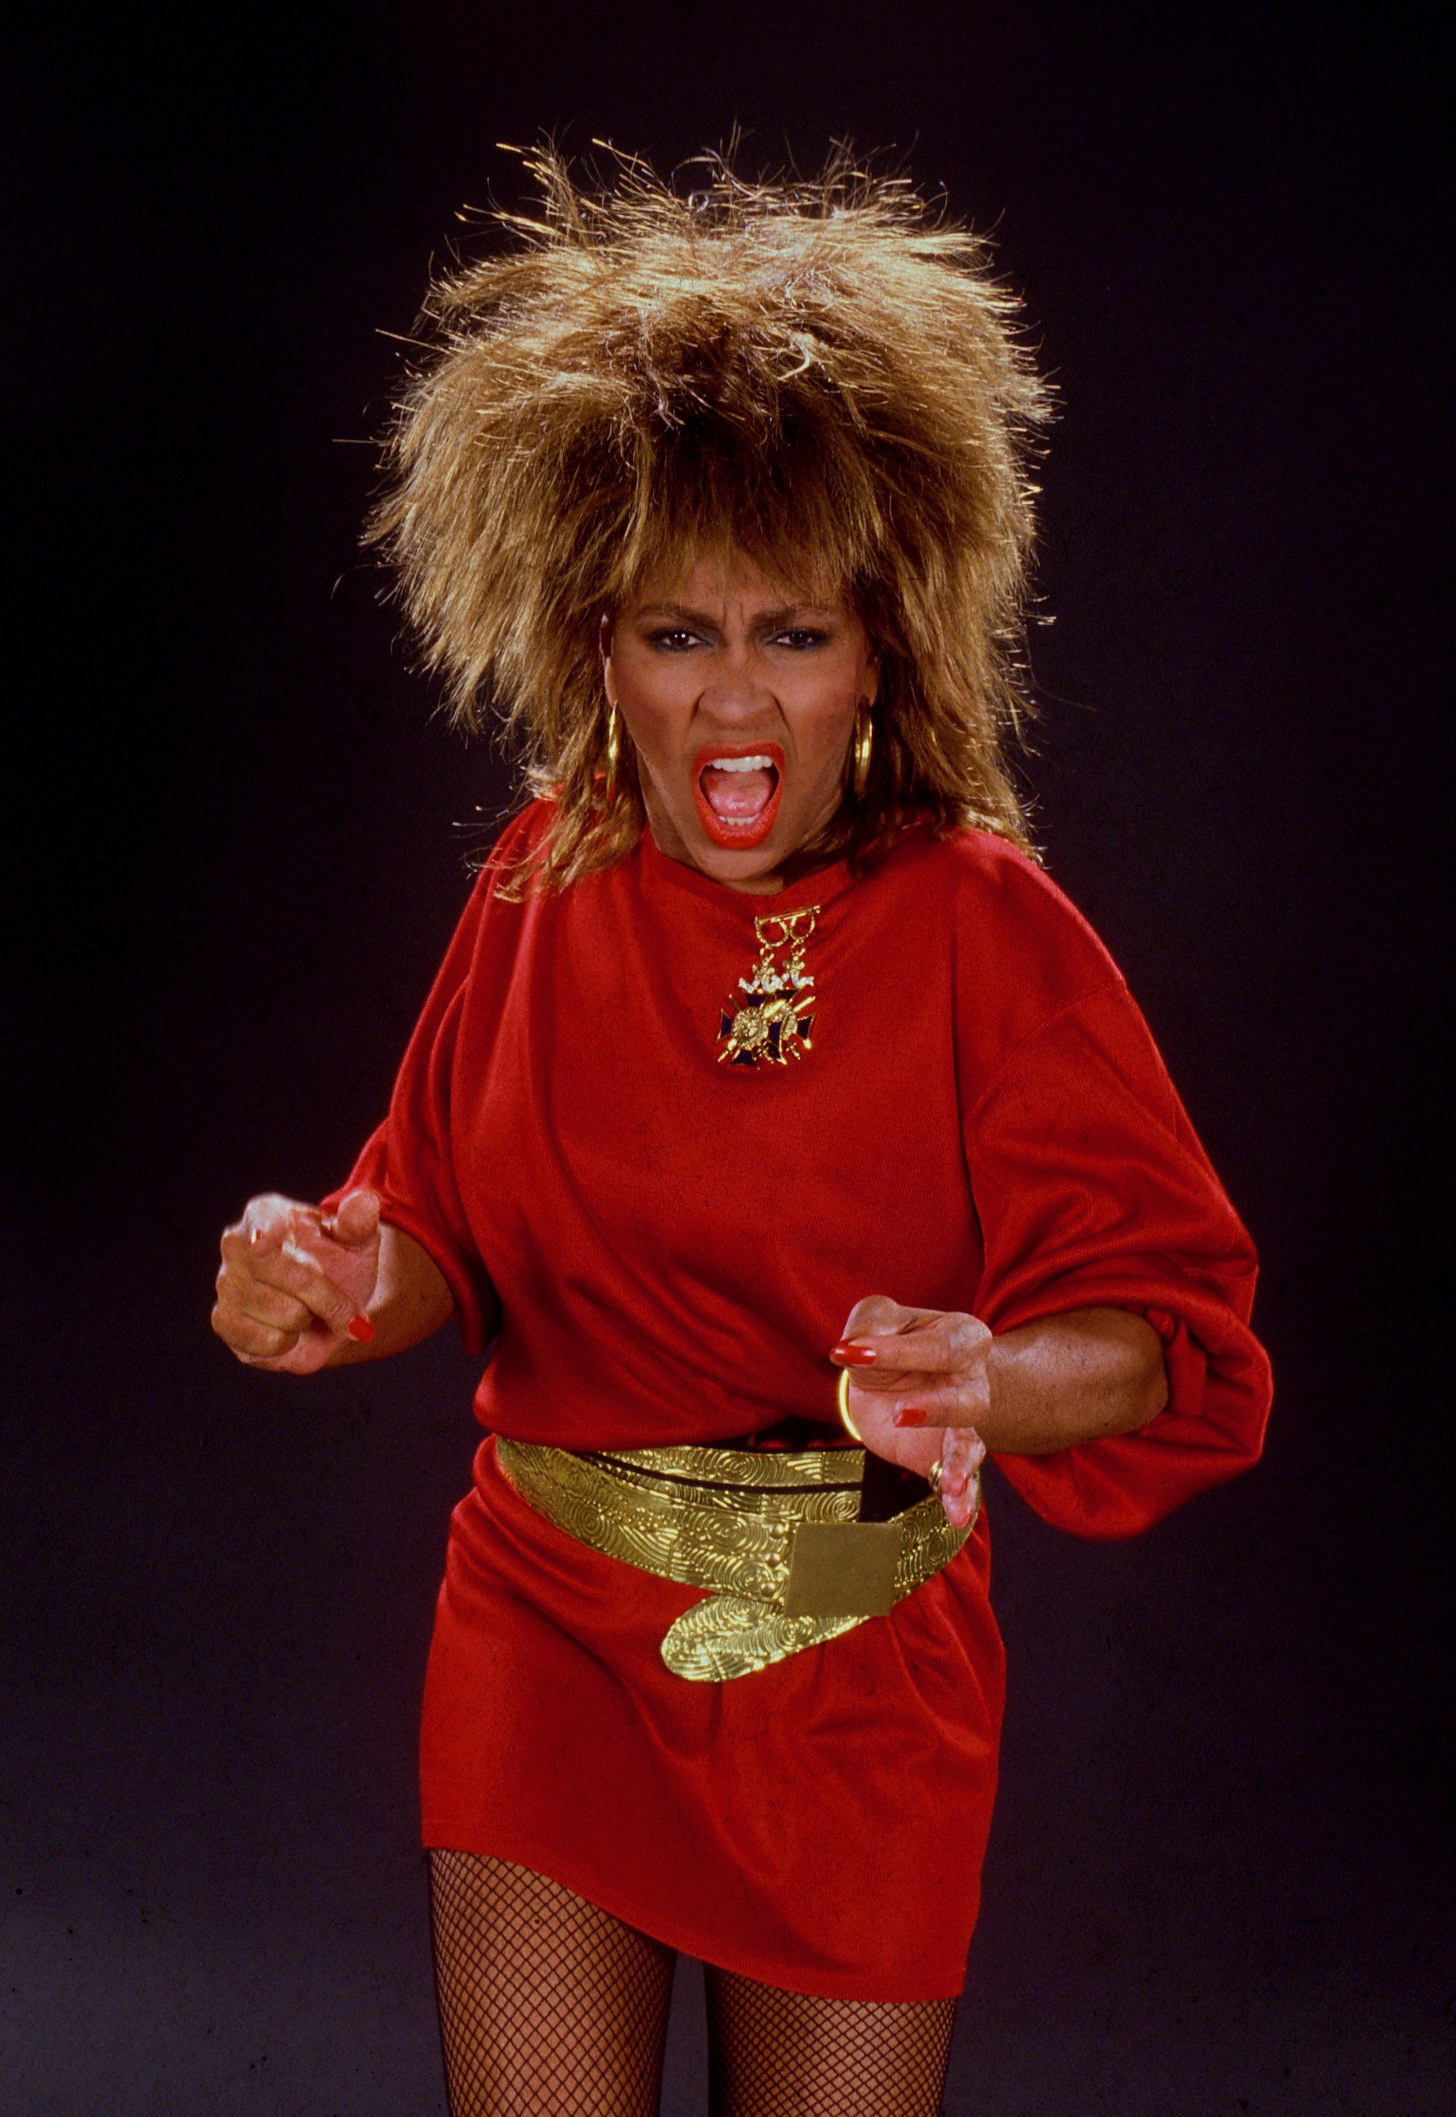 Tina Turner in red dress looking fierce